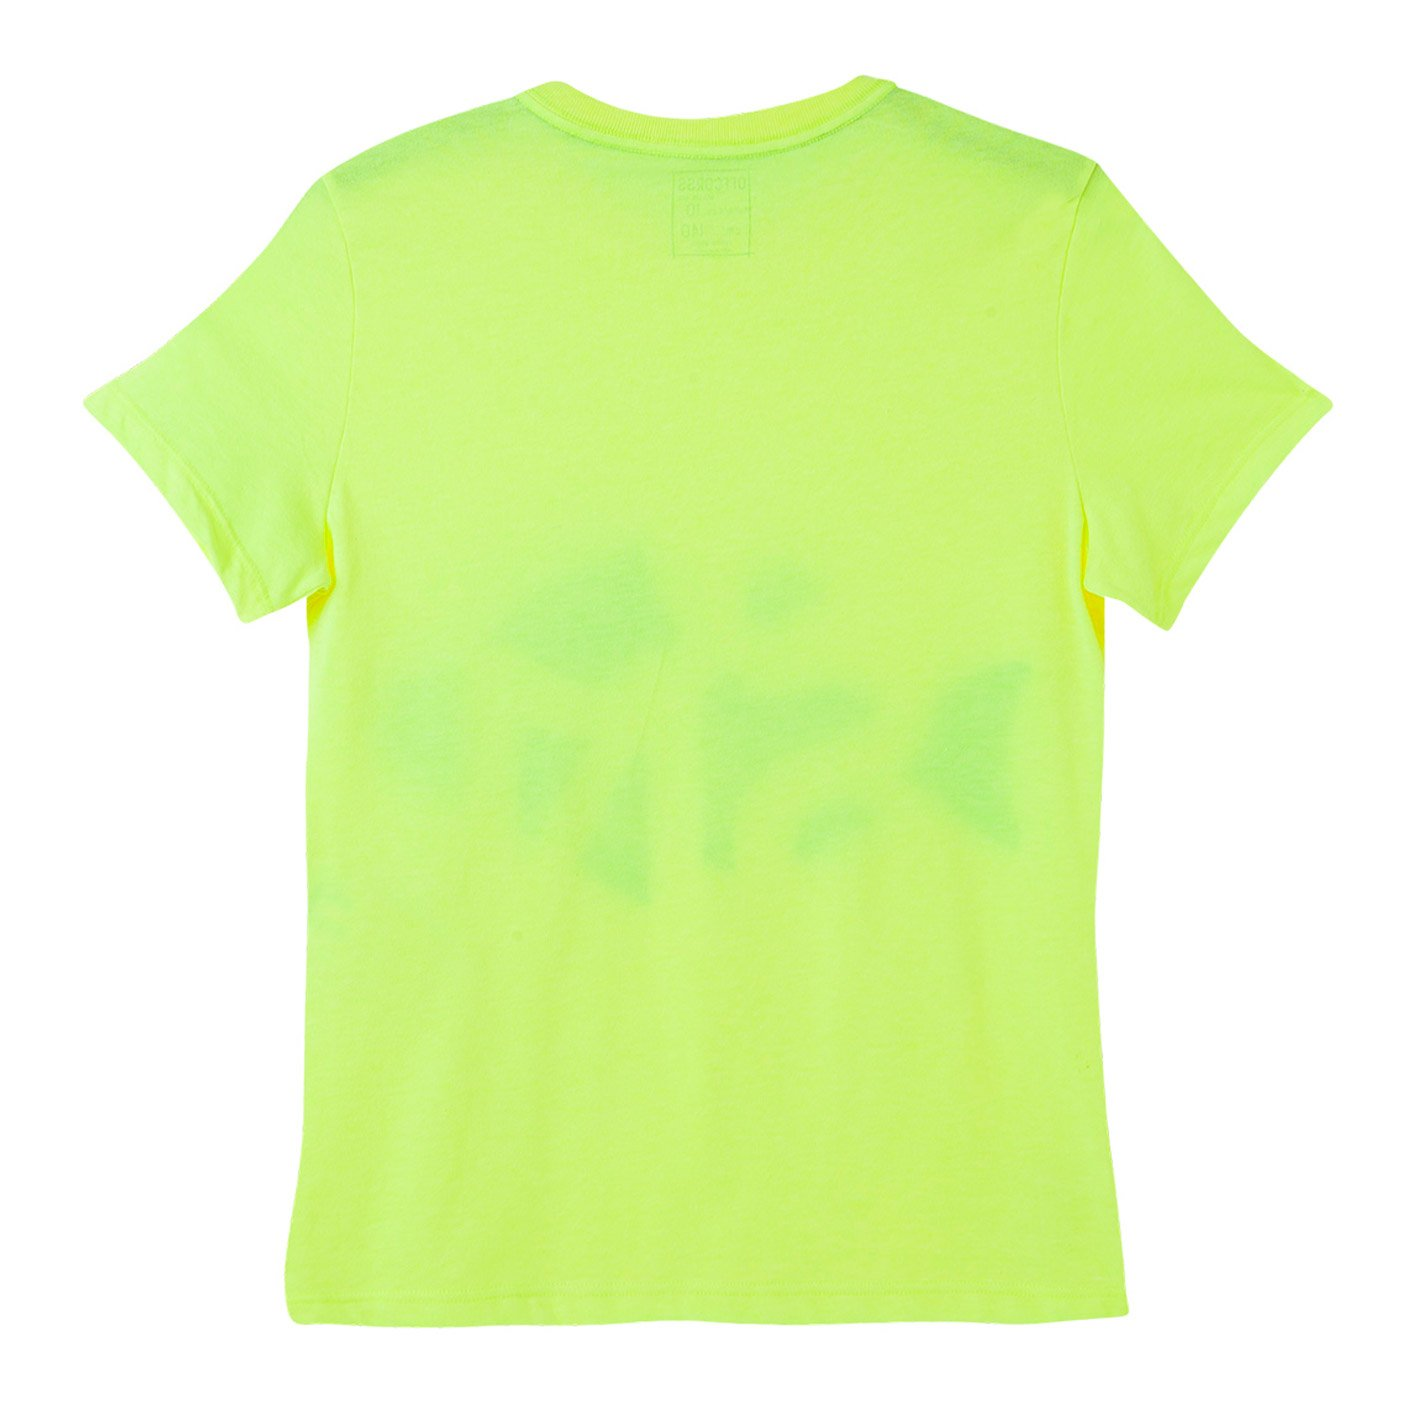 OFFCORSS Trendy Stylish Short Sleeve Tshirt for Kids Camiseta De Niños Yellow 10 by OFFCORSS (Image #2)